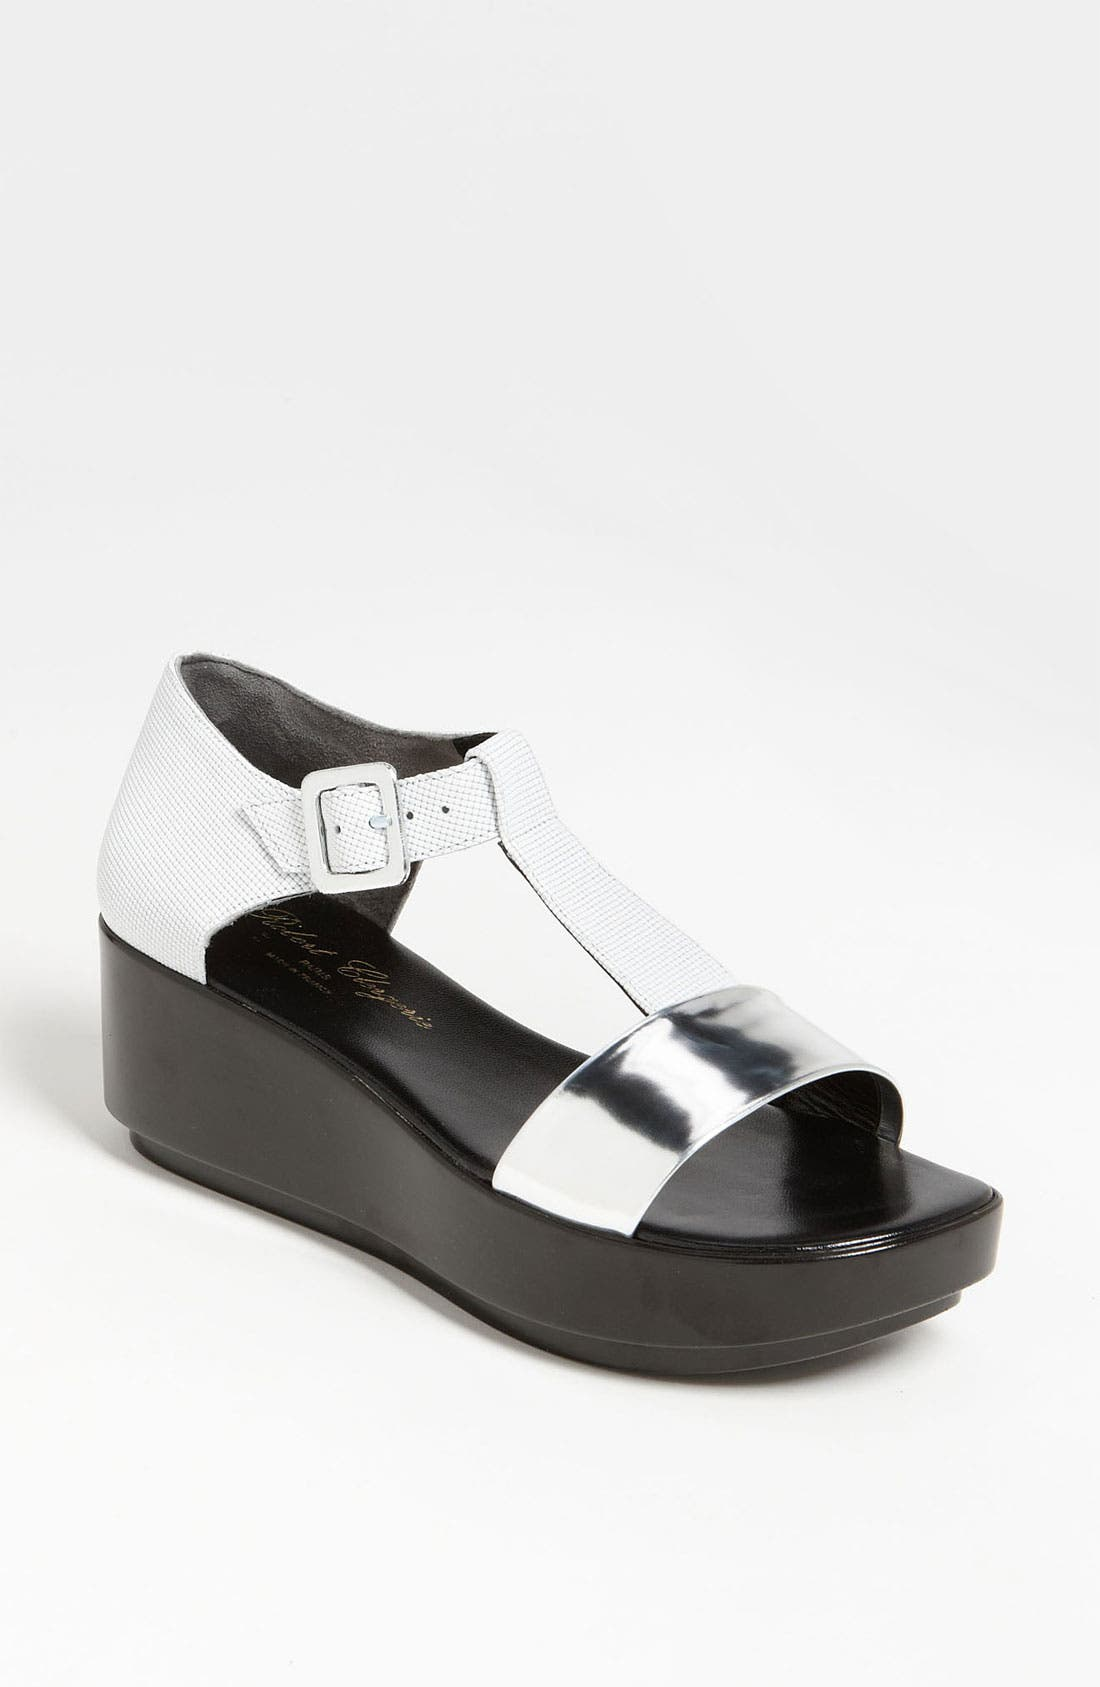 Main Image - Robert Clergerie 'Pepo' Sandal